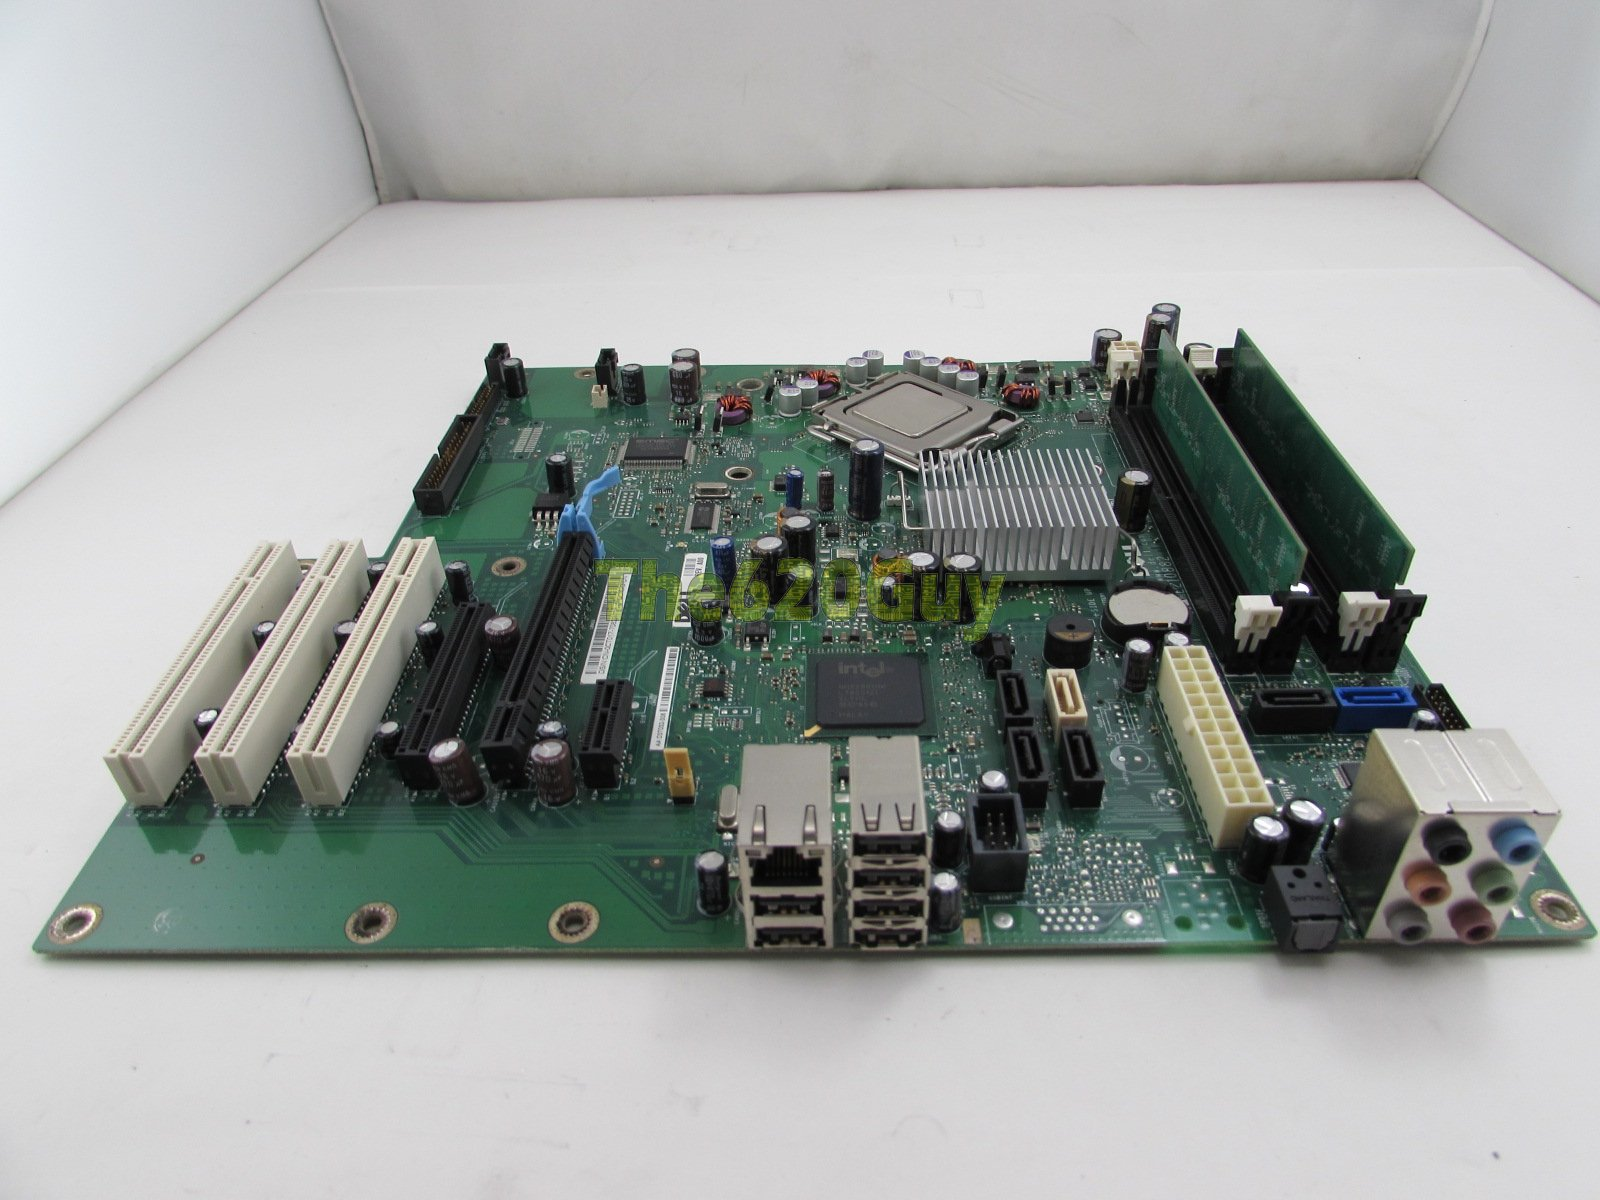 Intel desktop board dq965gf